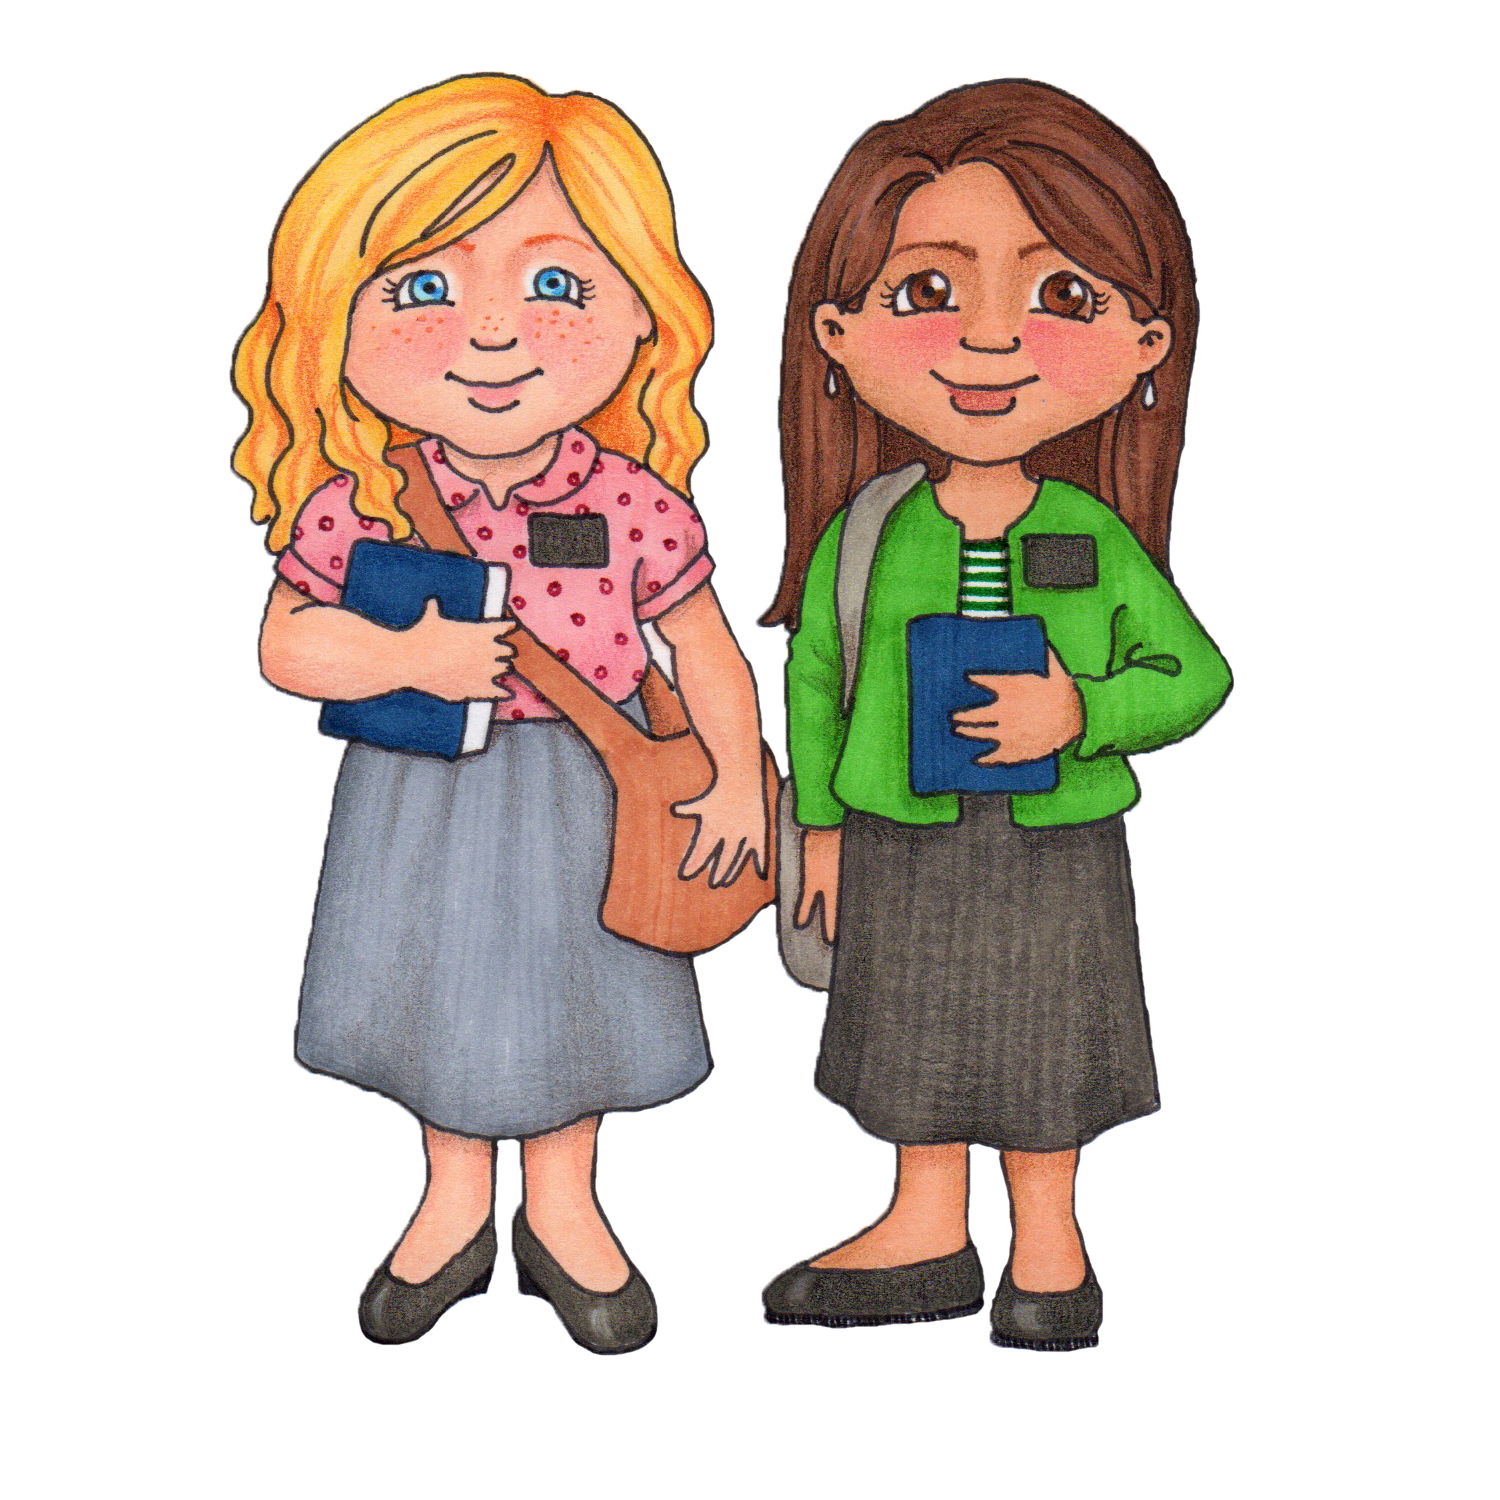 Free missionary cliparts download. Words clipart sister